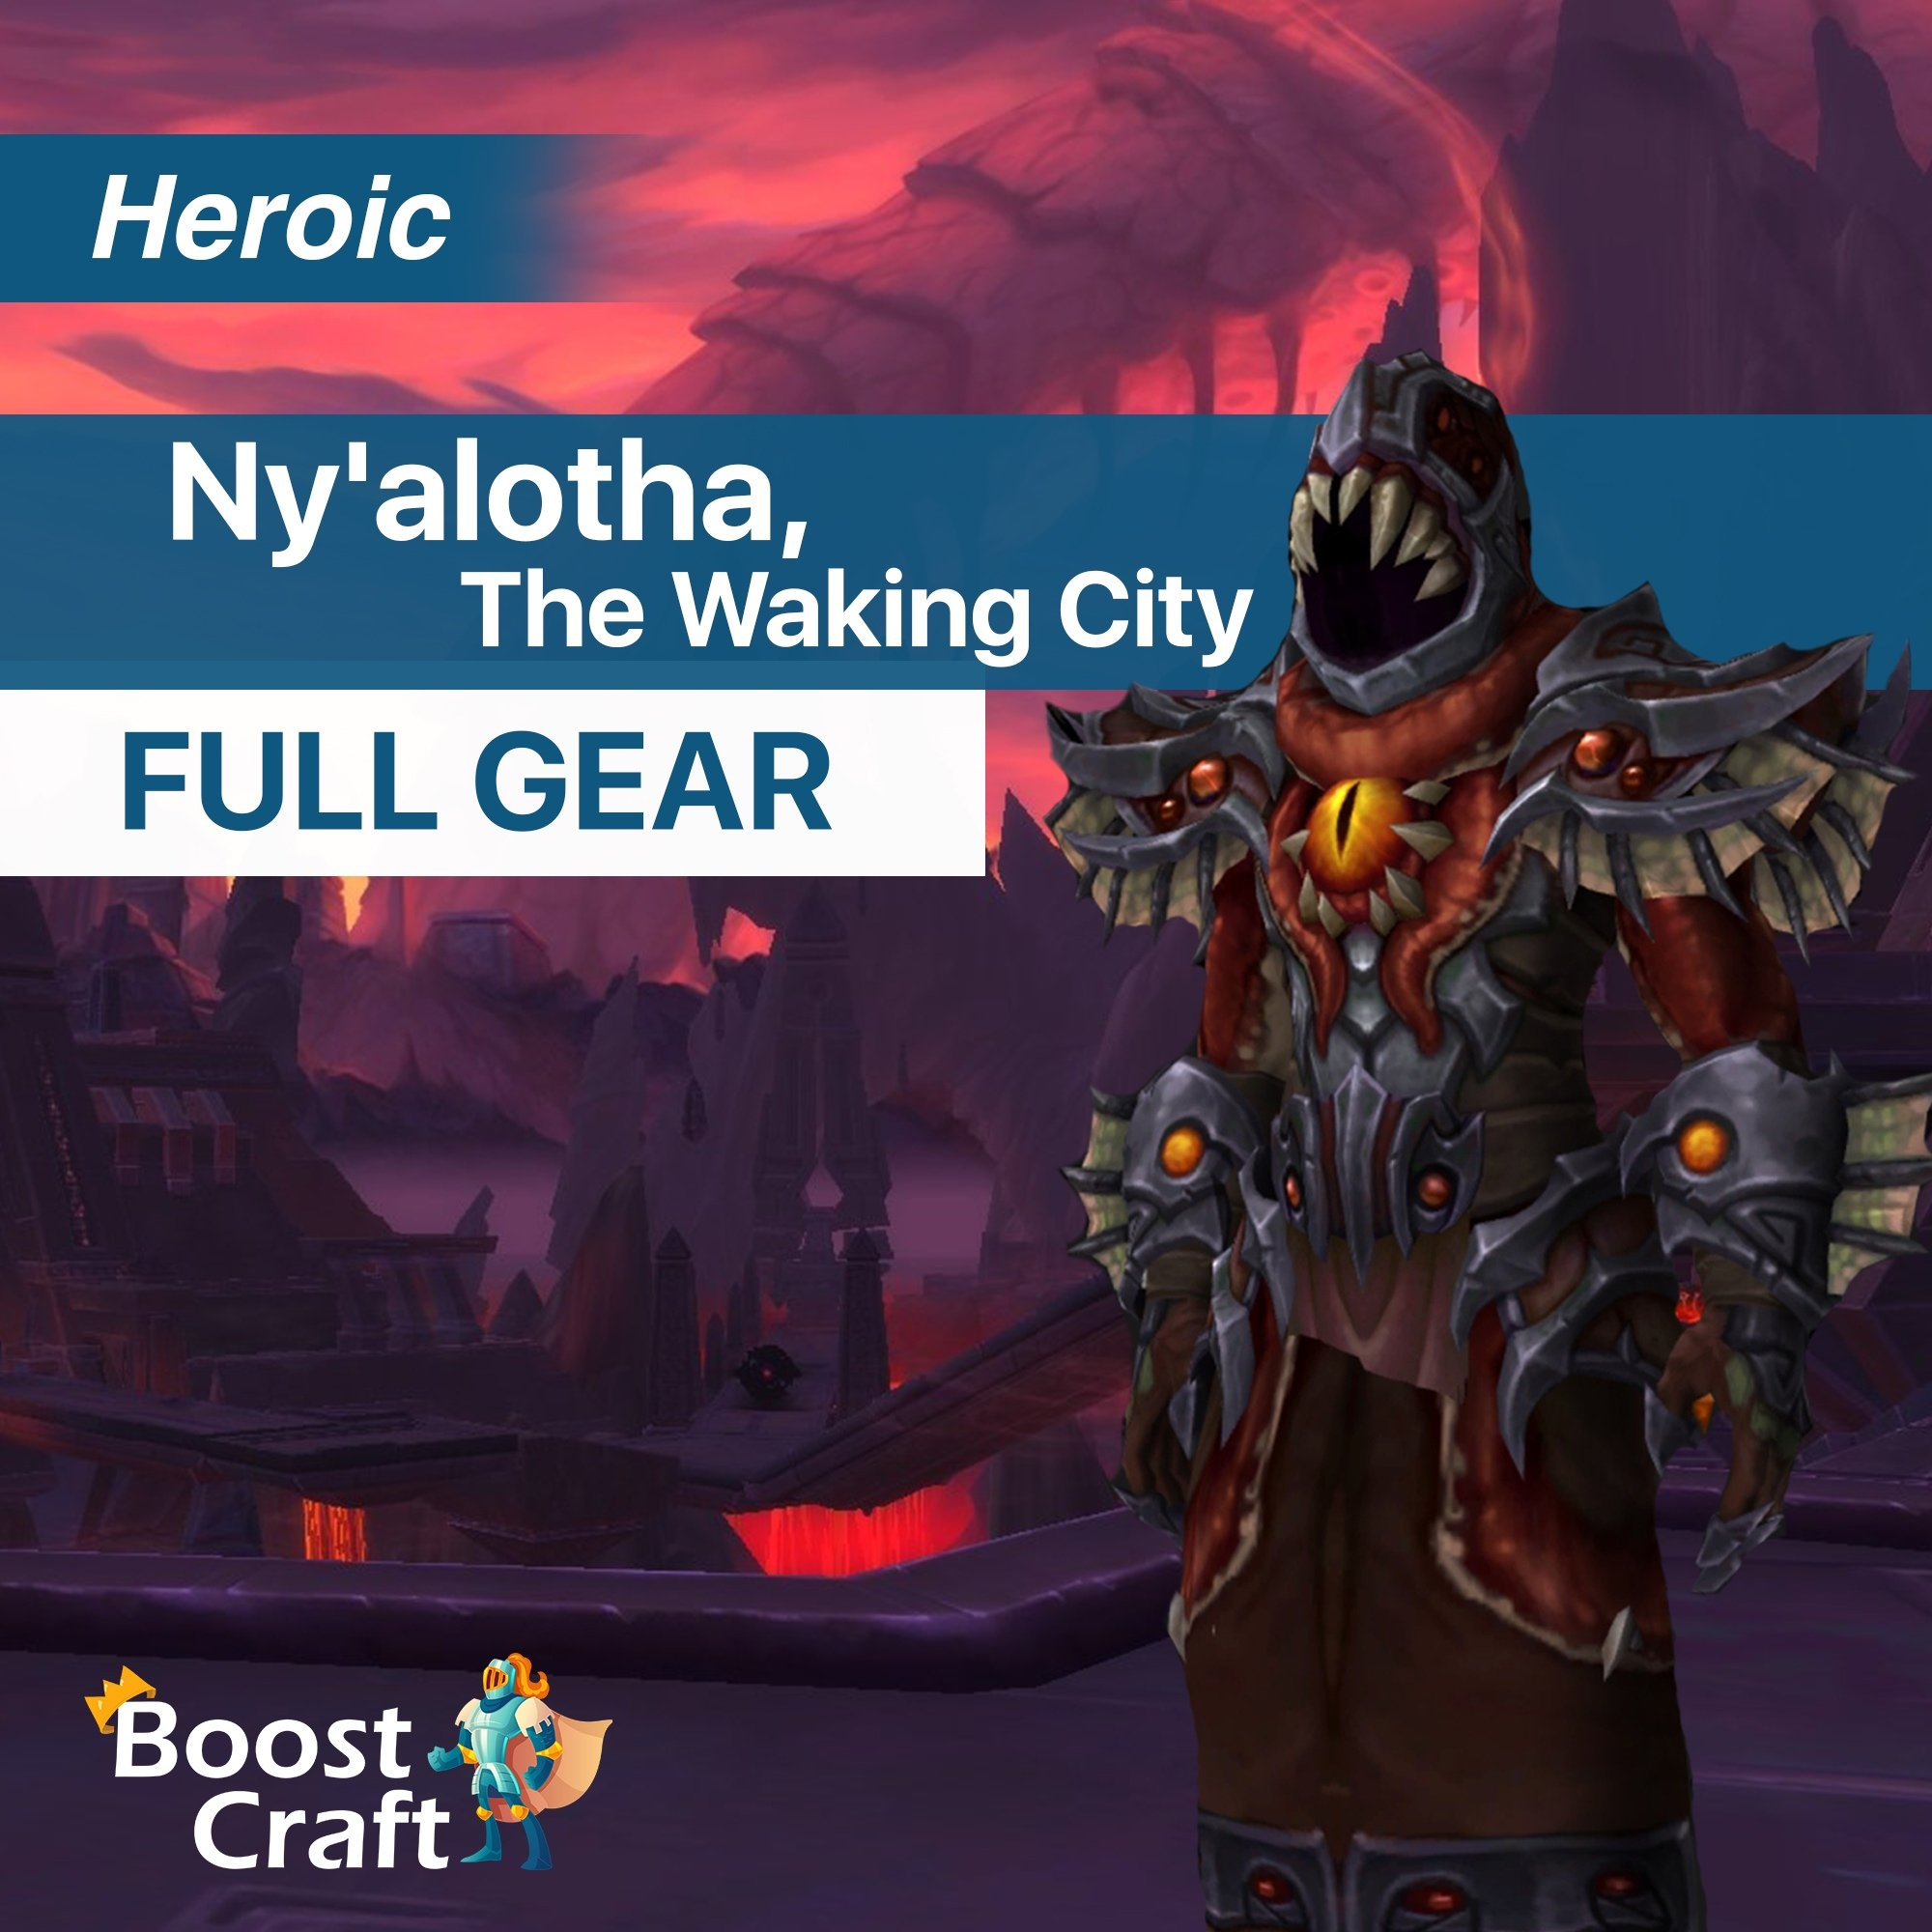 Ny'alotha, The Waking City Heroic FULL GEAR – 115-125 ilvl Boost